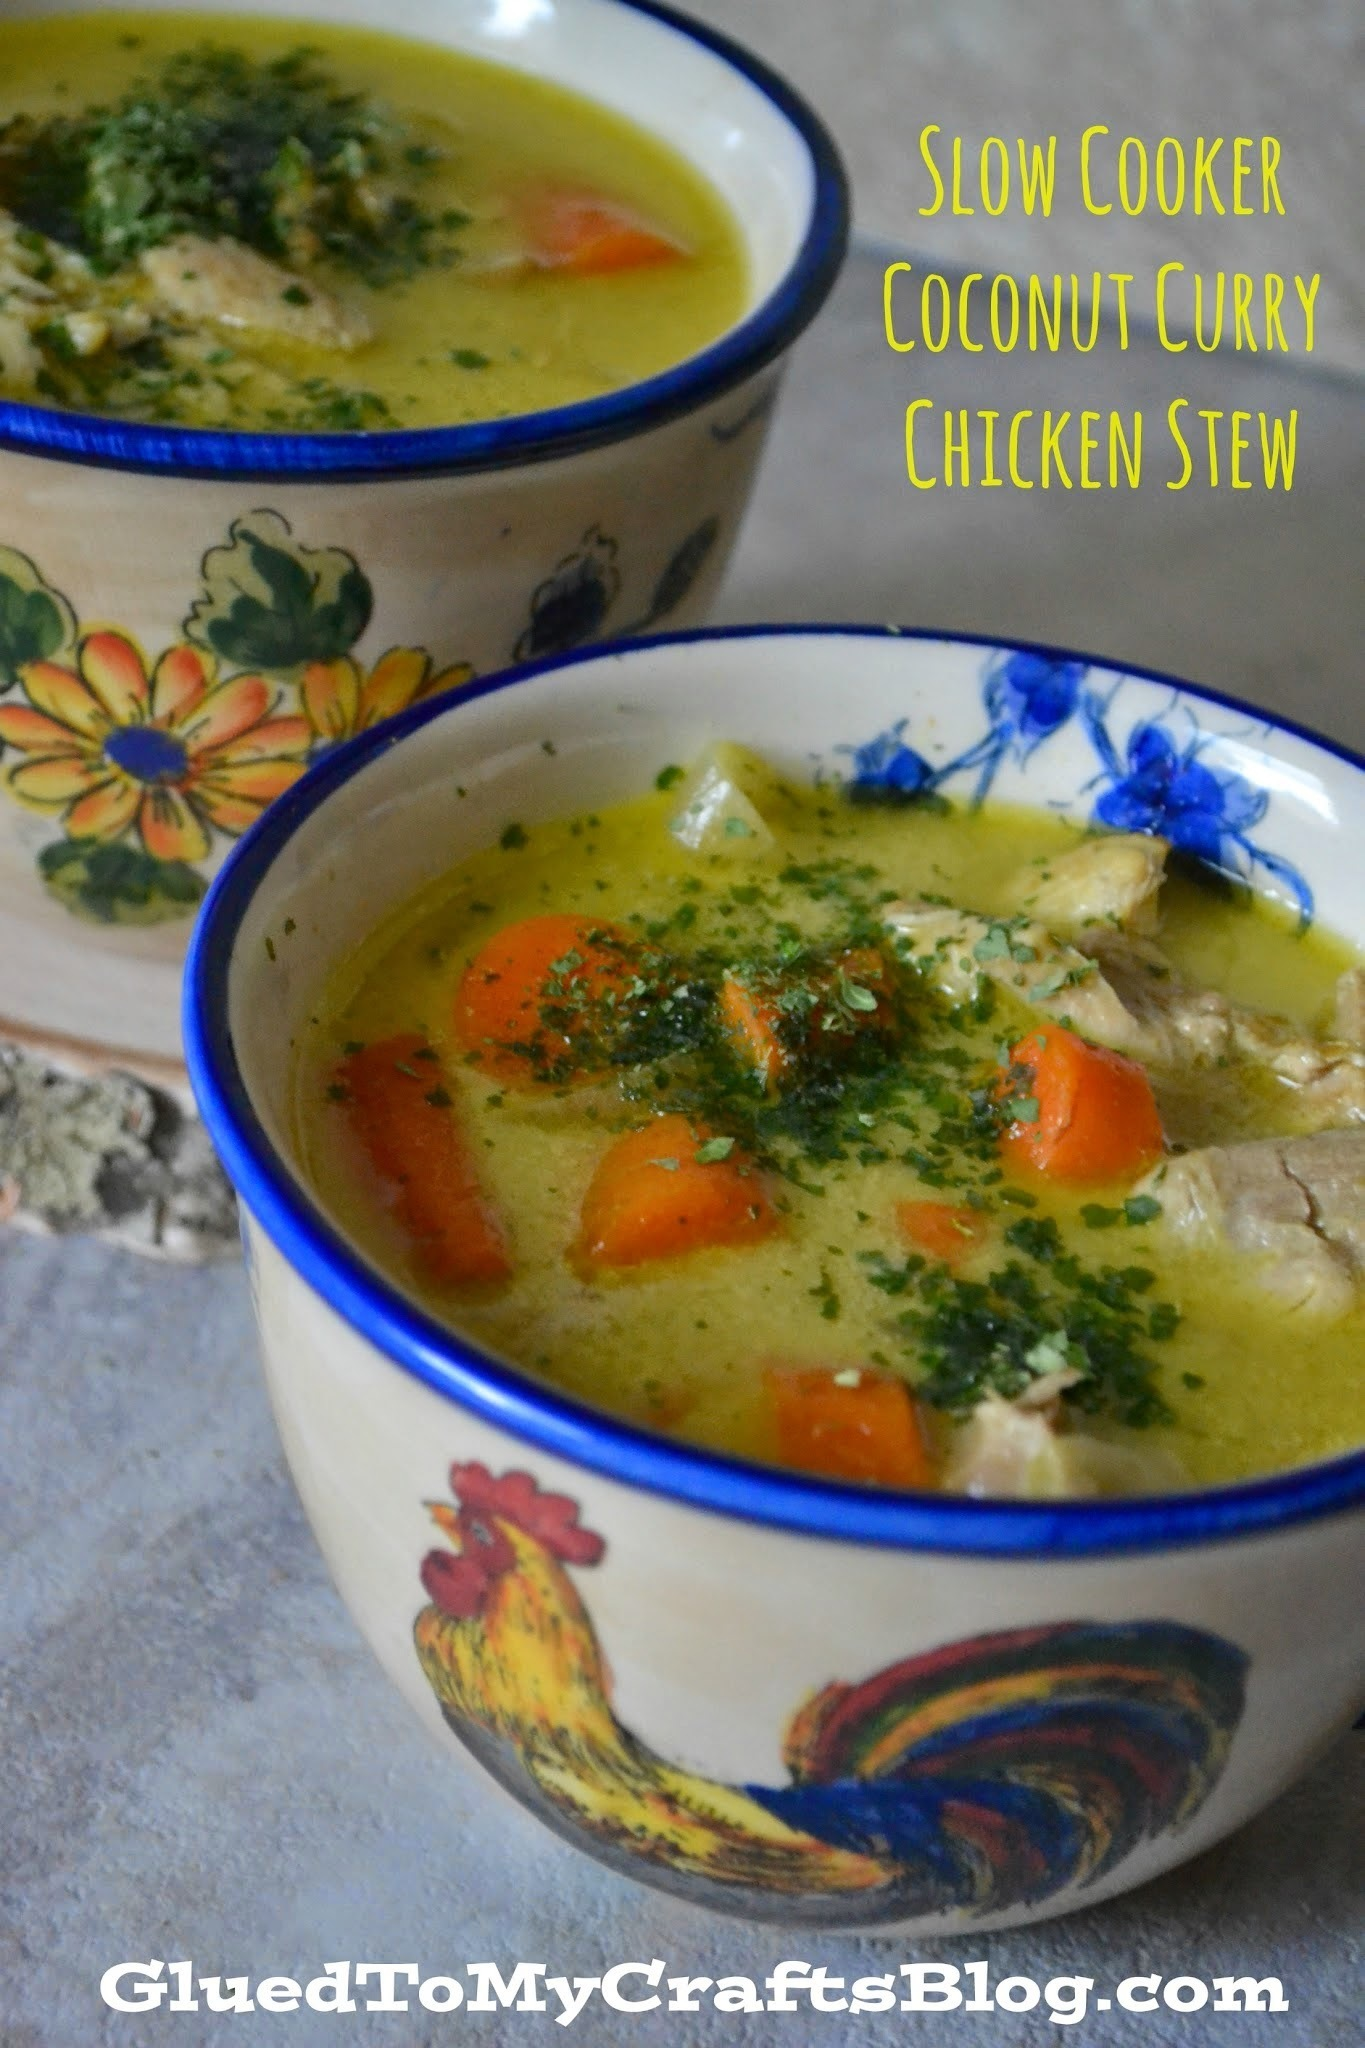 Slow Cooker Coconut Curry Chicken Stew {Recipe} & Giveaway ends 10/23